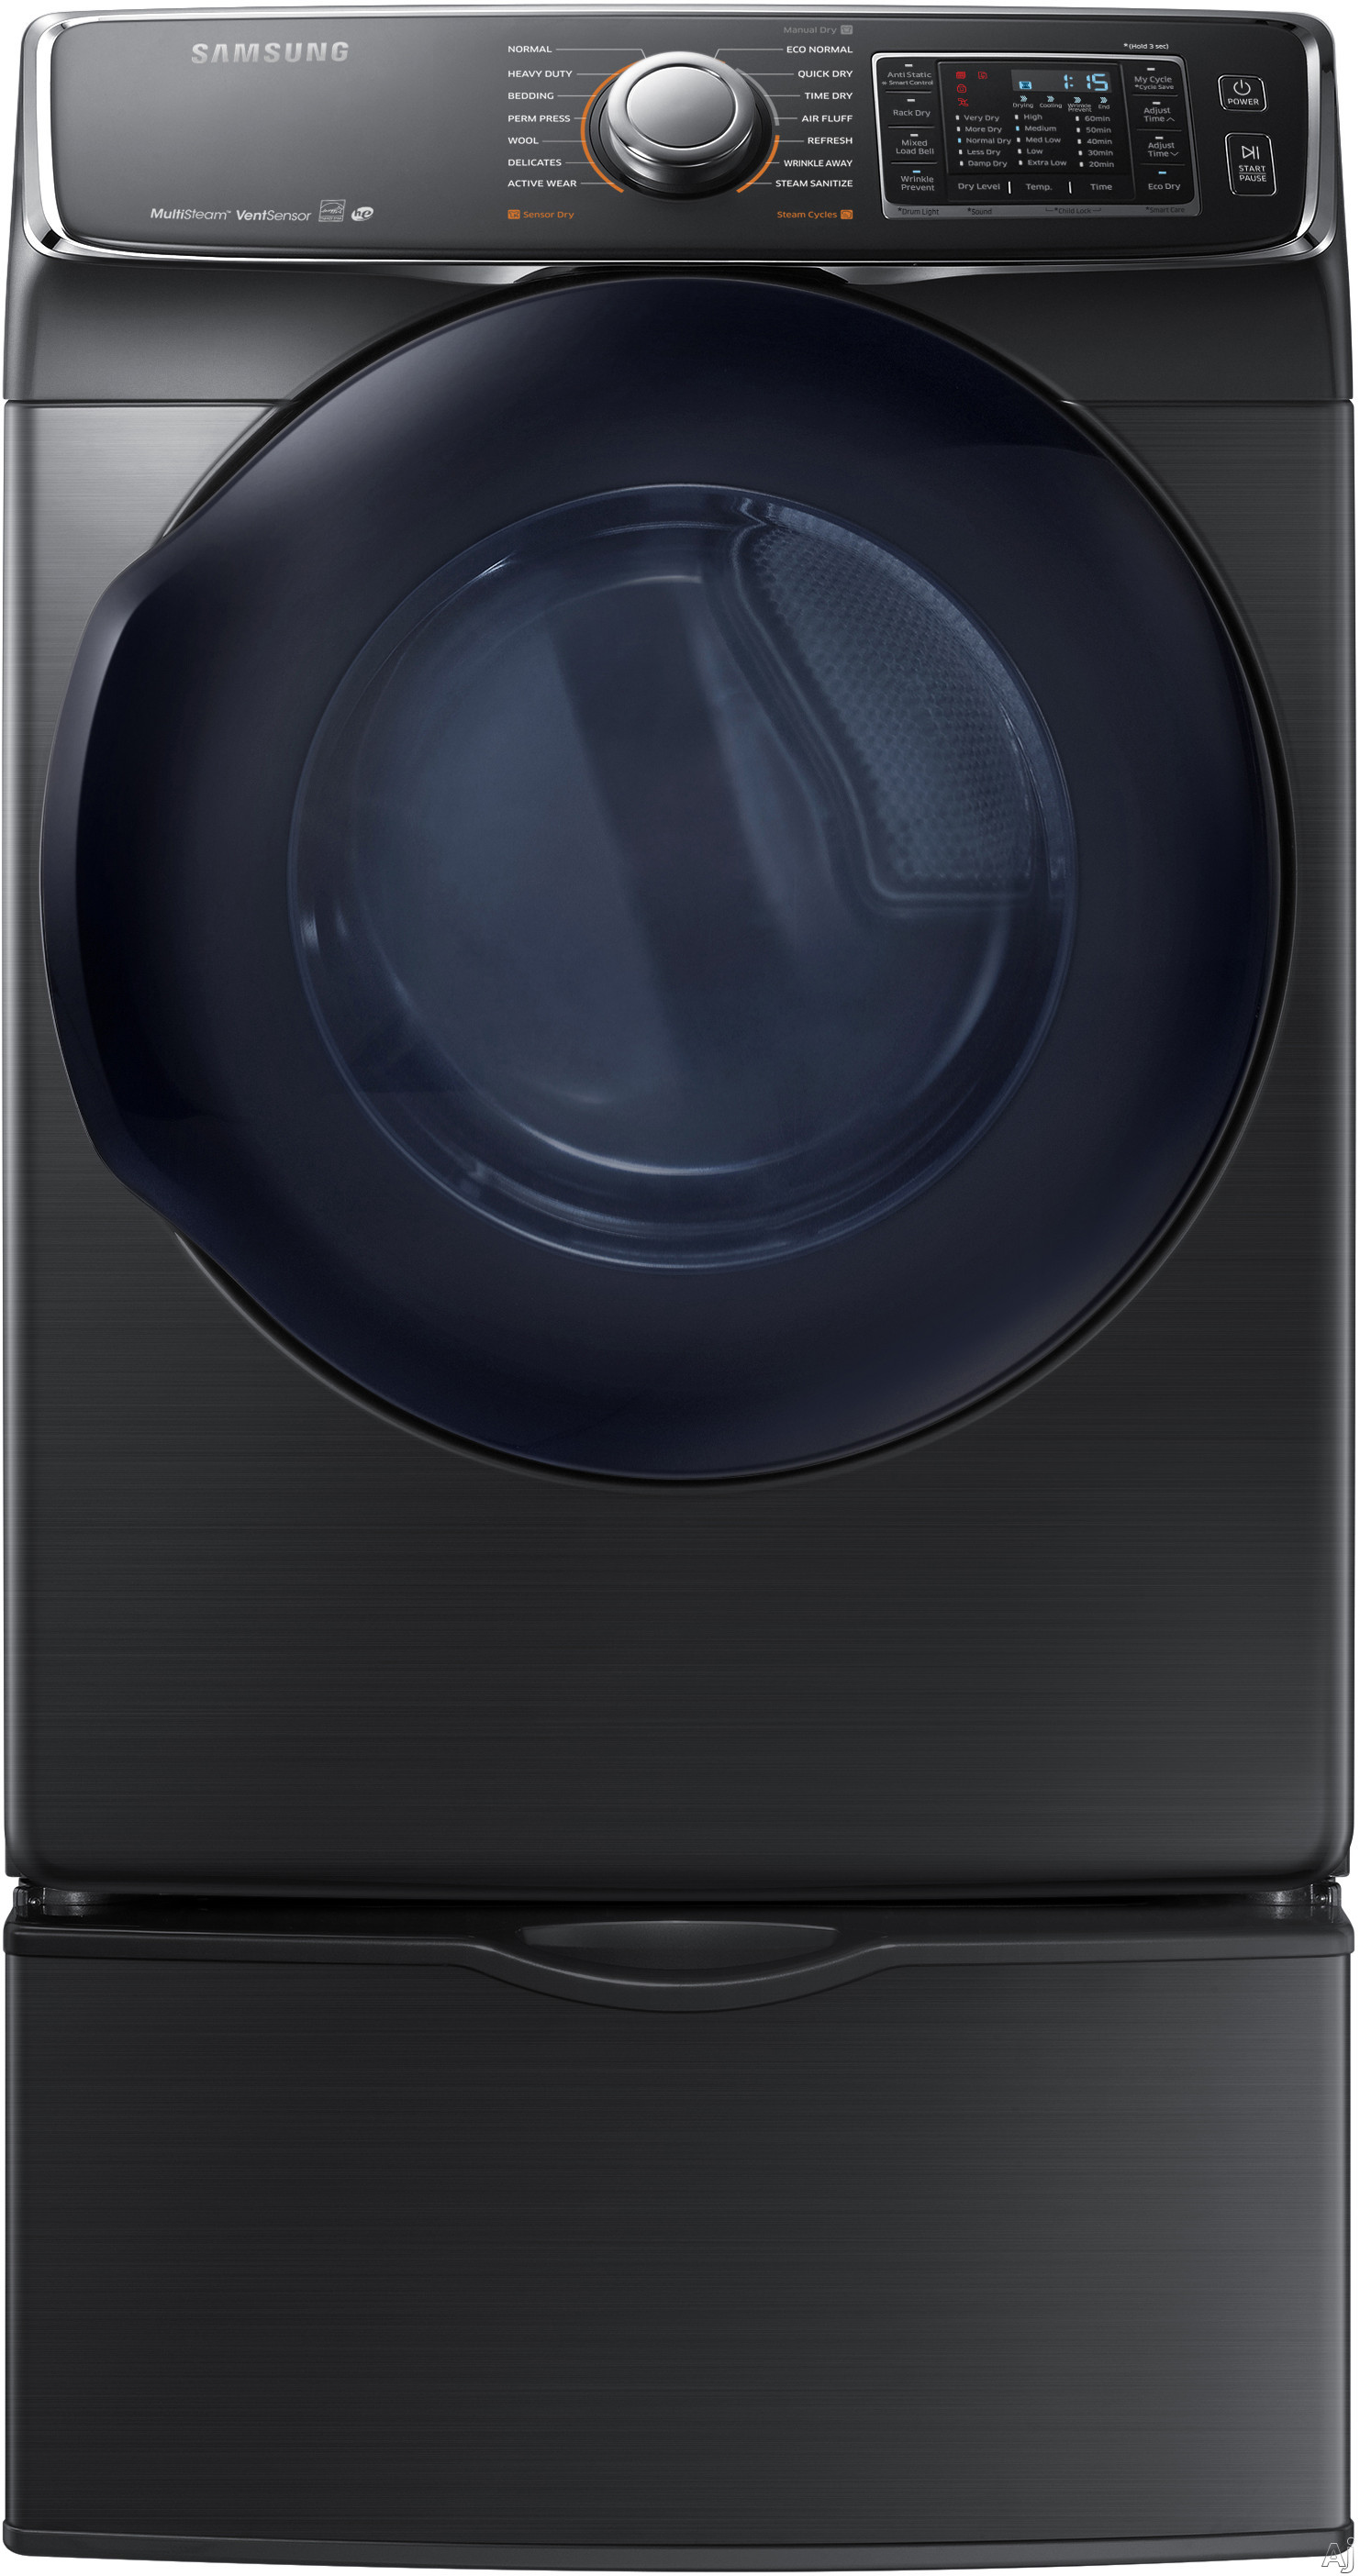 Samsung DV50K7500E 27 Inch 7.5 cu. ft. Electric Dryer with 14 Dry Cycles 12 Options 5 Temperature Selections Multi Steam Eco Dry Smart Care Vent Sensor Dryer Rack and ENERGY STAR Rated